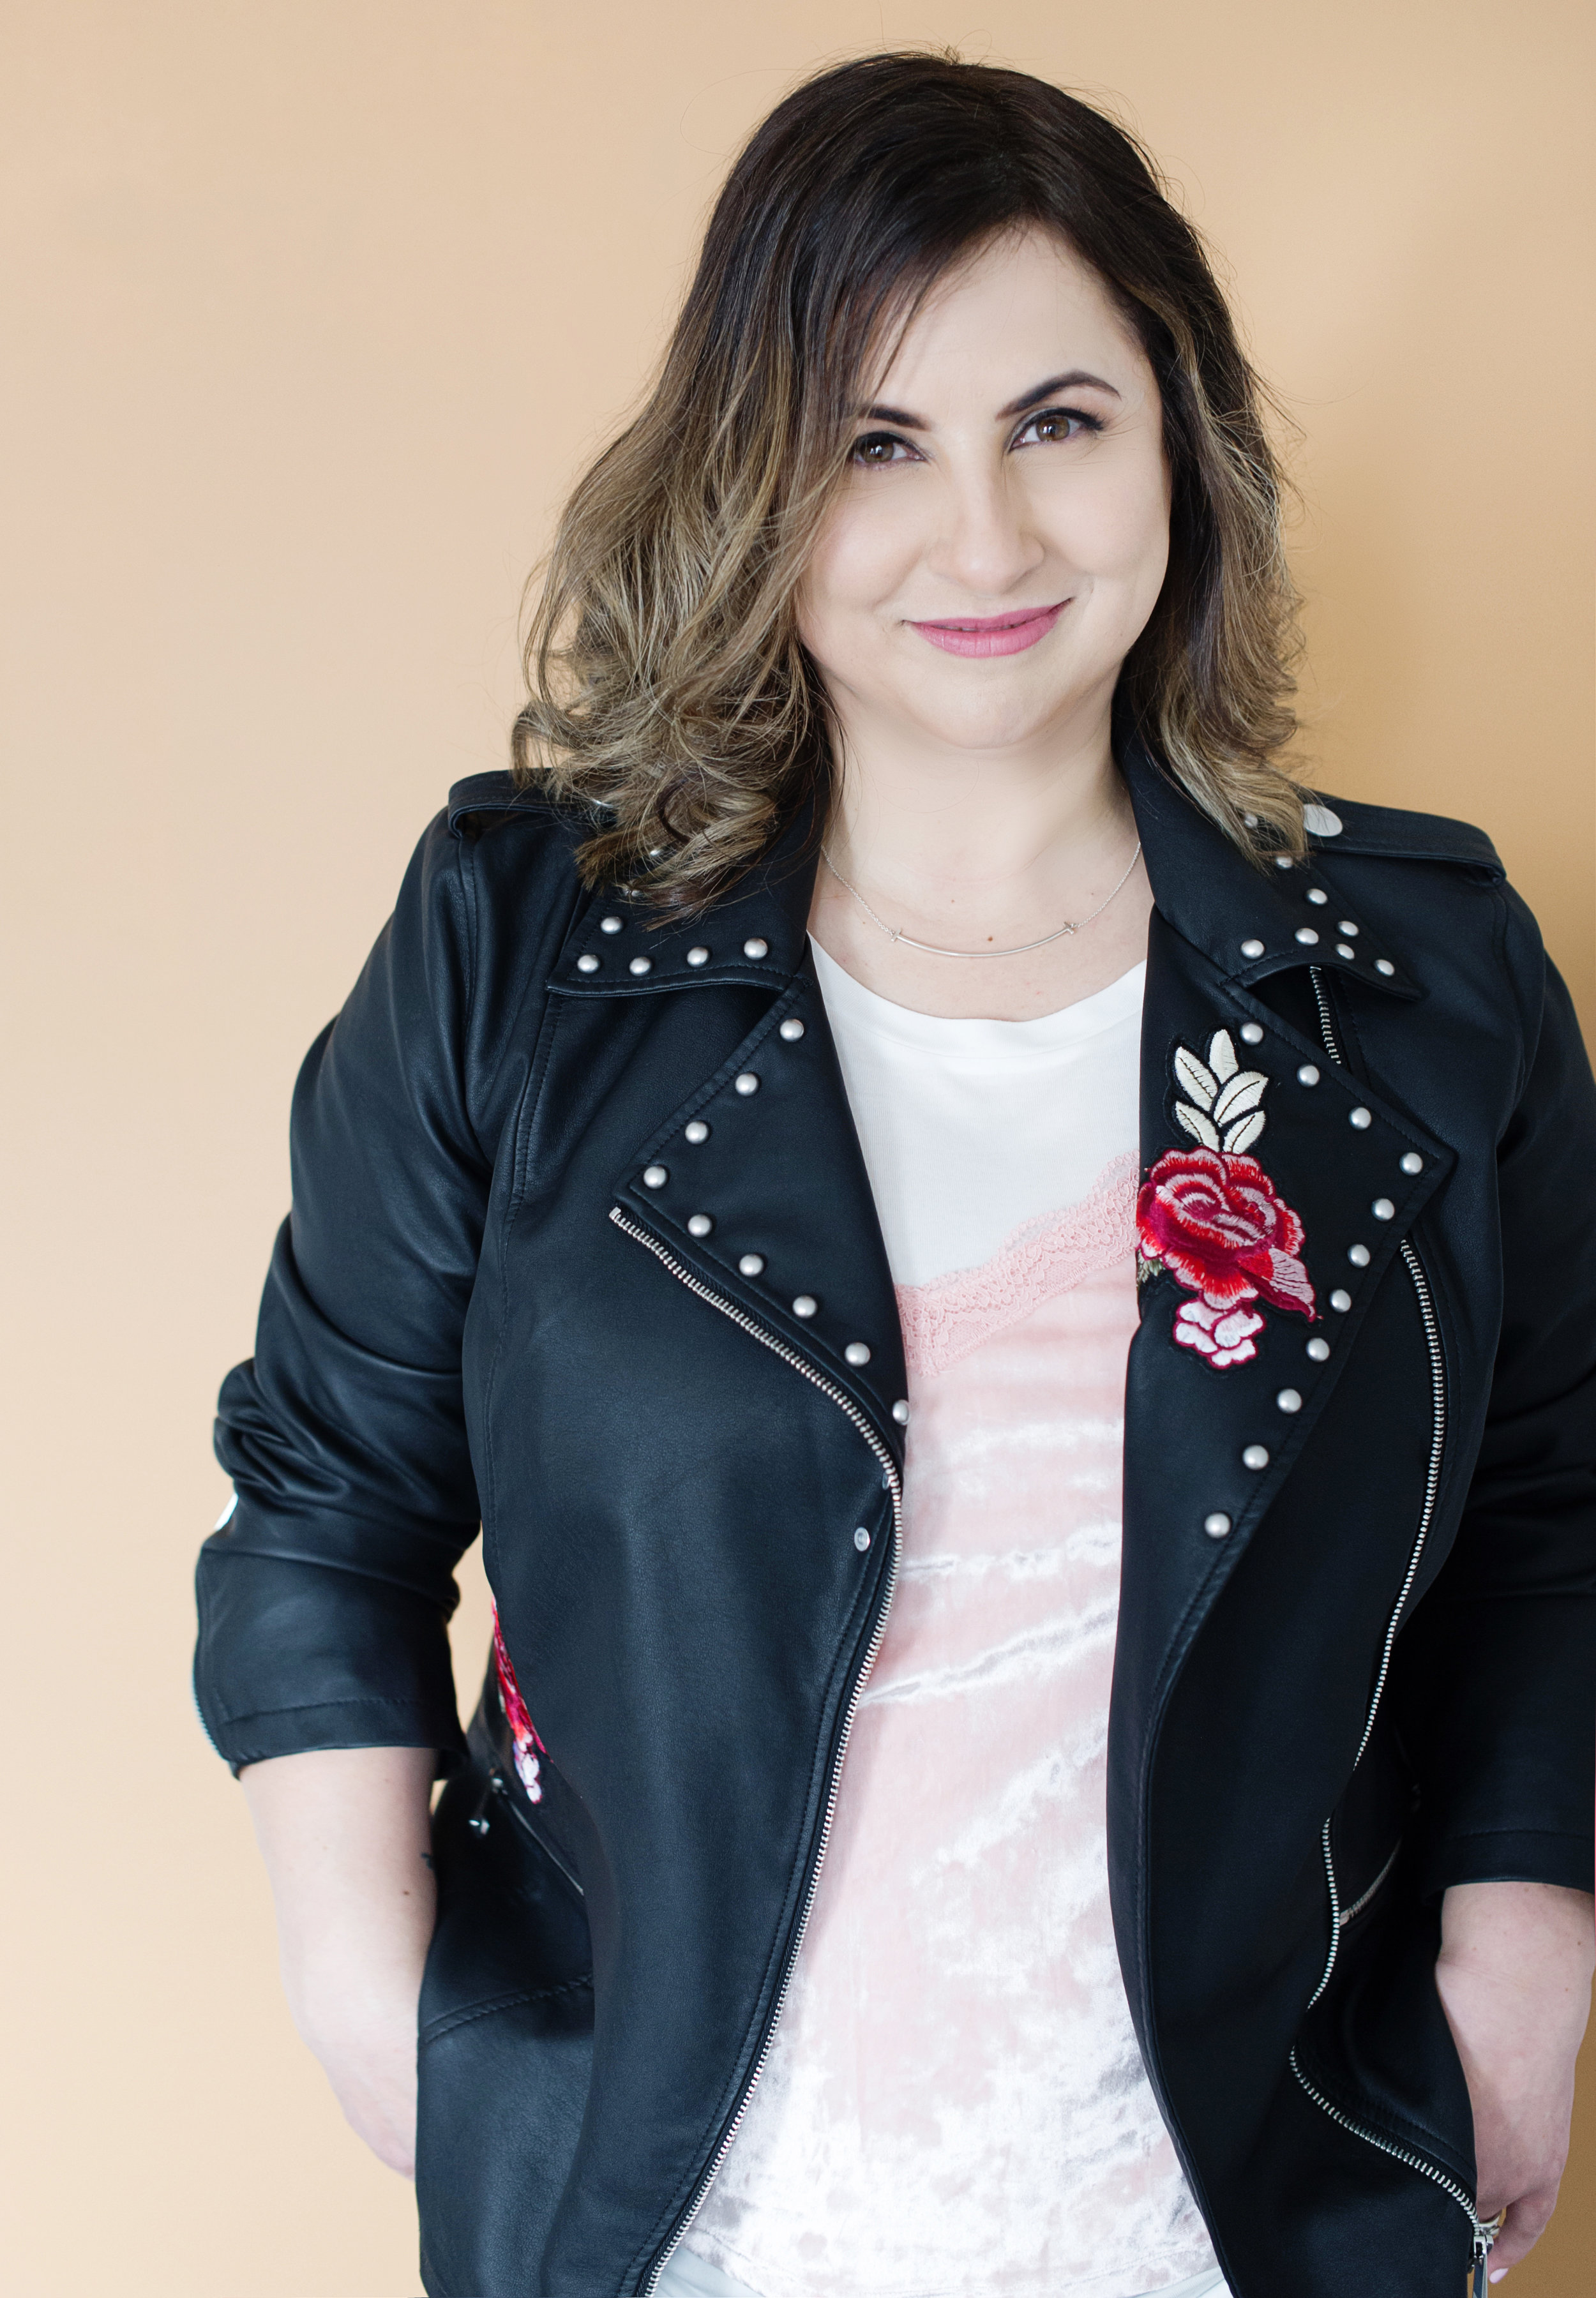 Photo Description: Mary smiling, head tilted to the camera, wearing a studded leather jacket, t-shirt and smile necklace